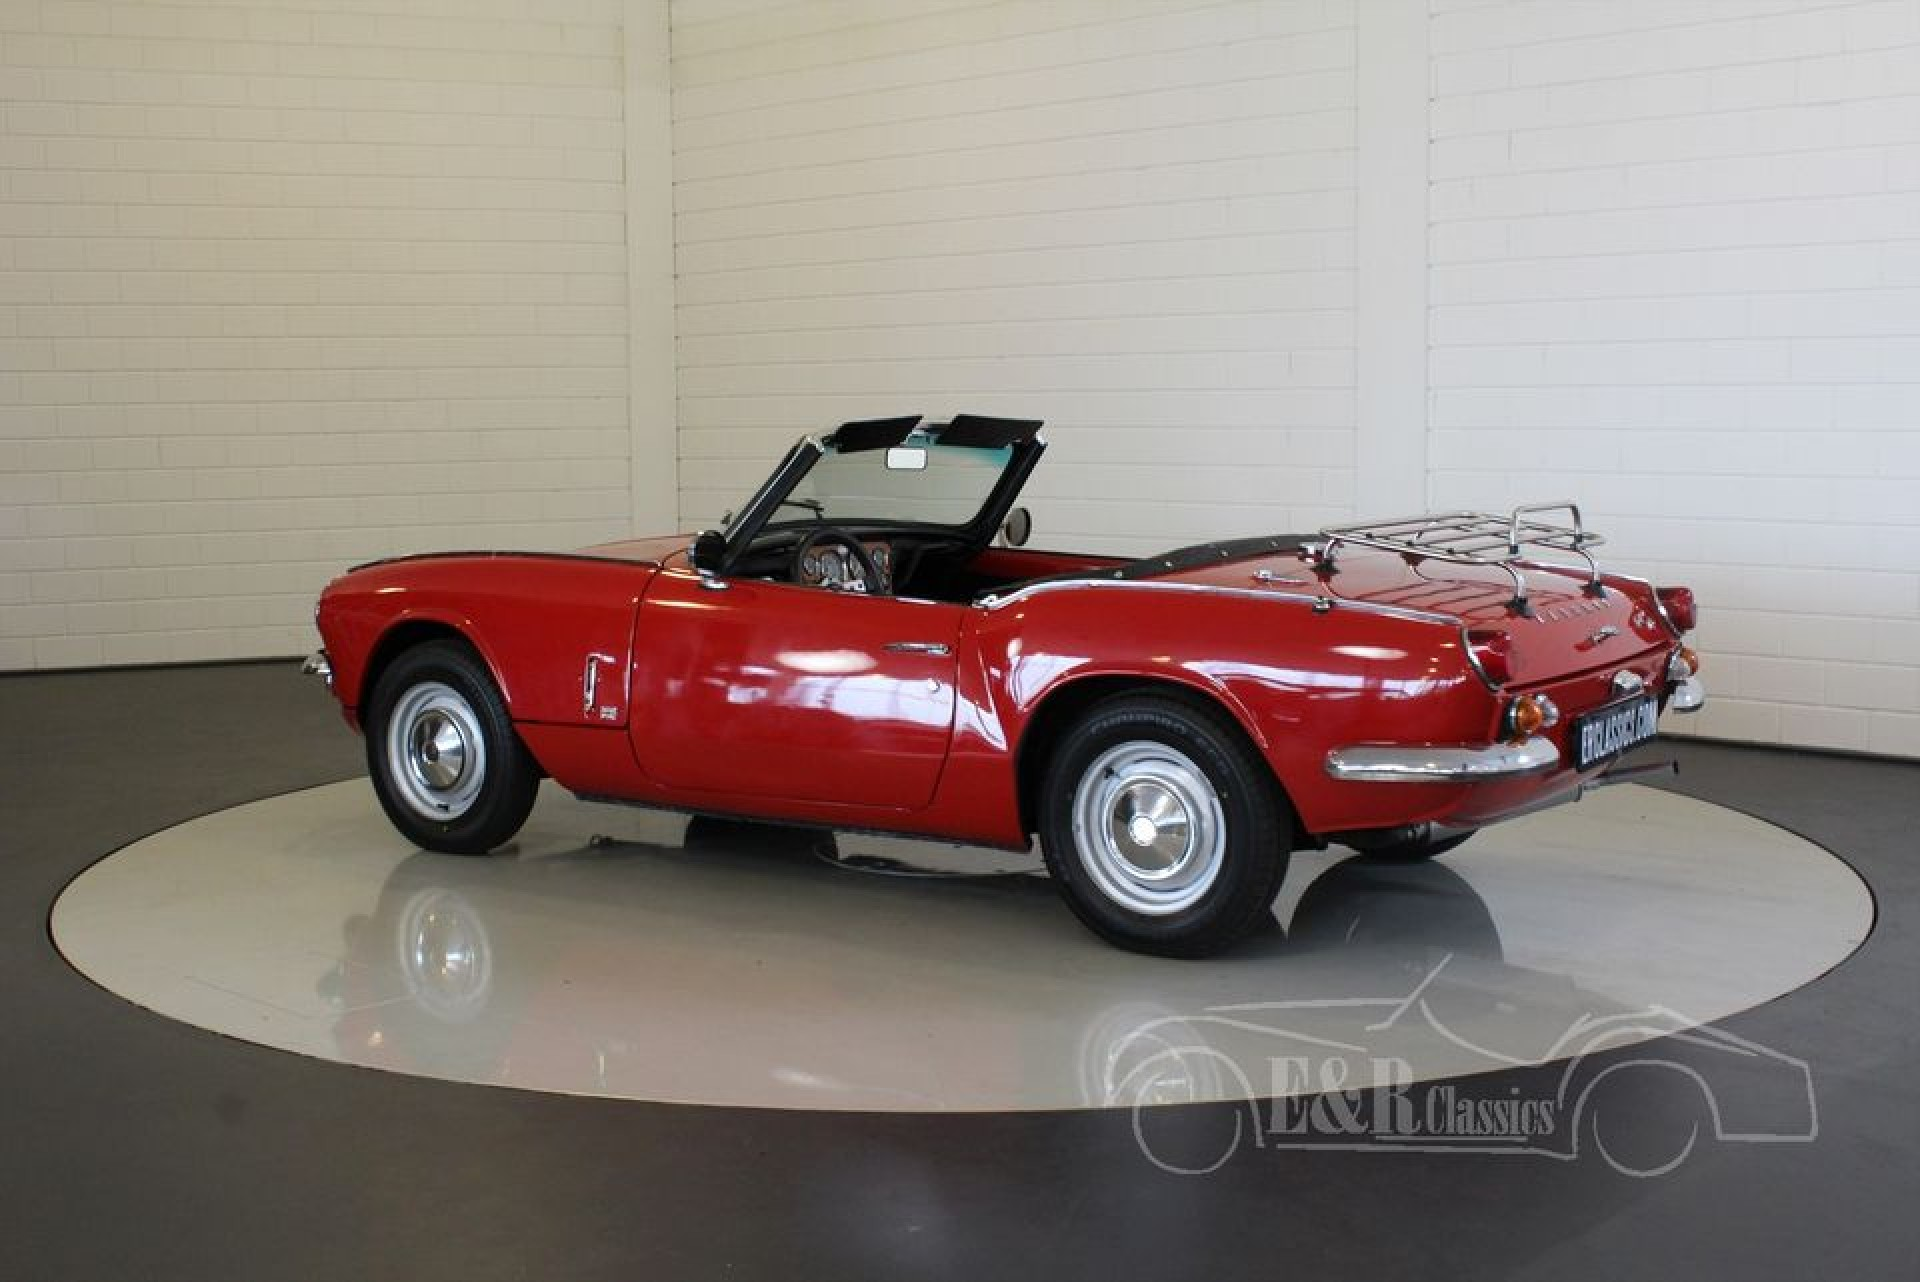 triumph spitfire cabriolet 1968 zum kauf bei erclassics. Black Bedroom Furniture Sets. Home Design Ideas